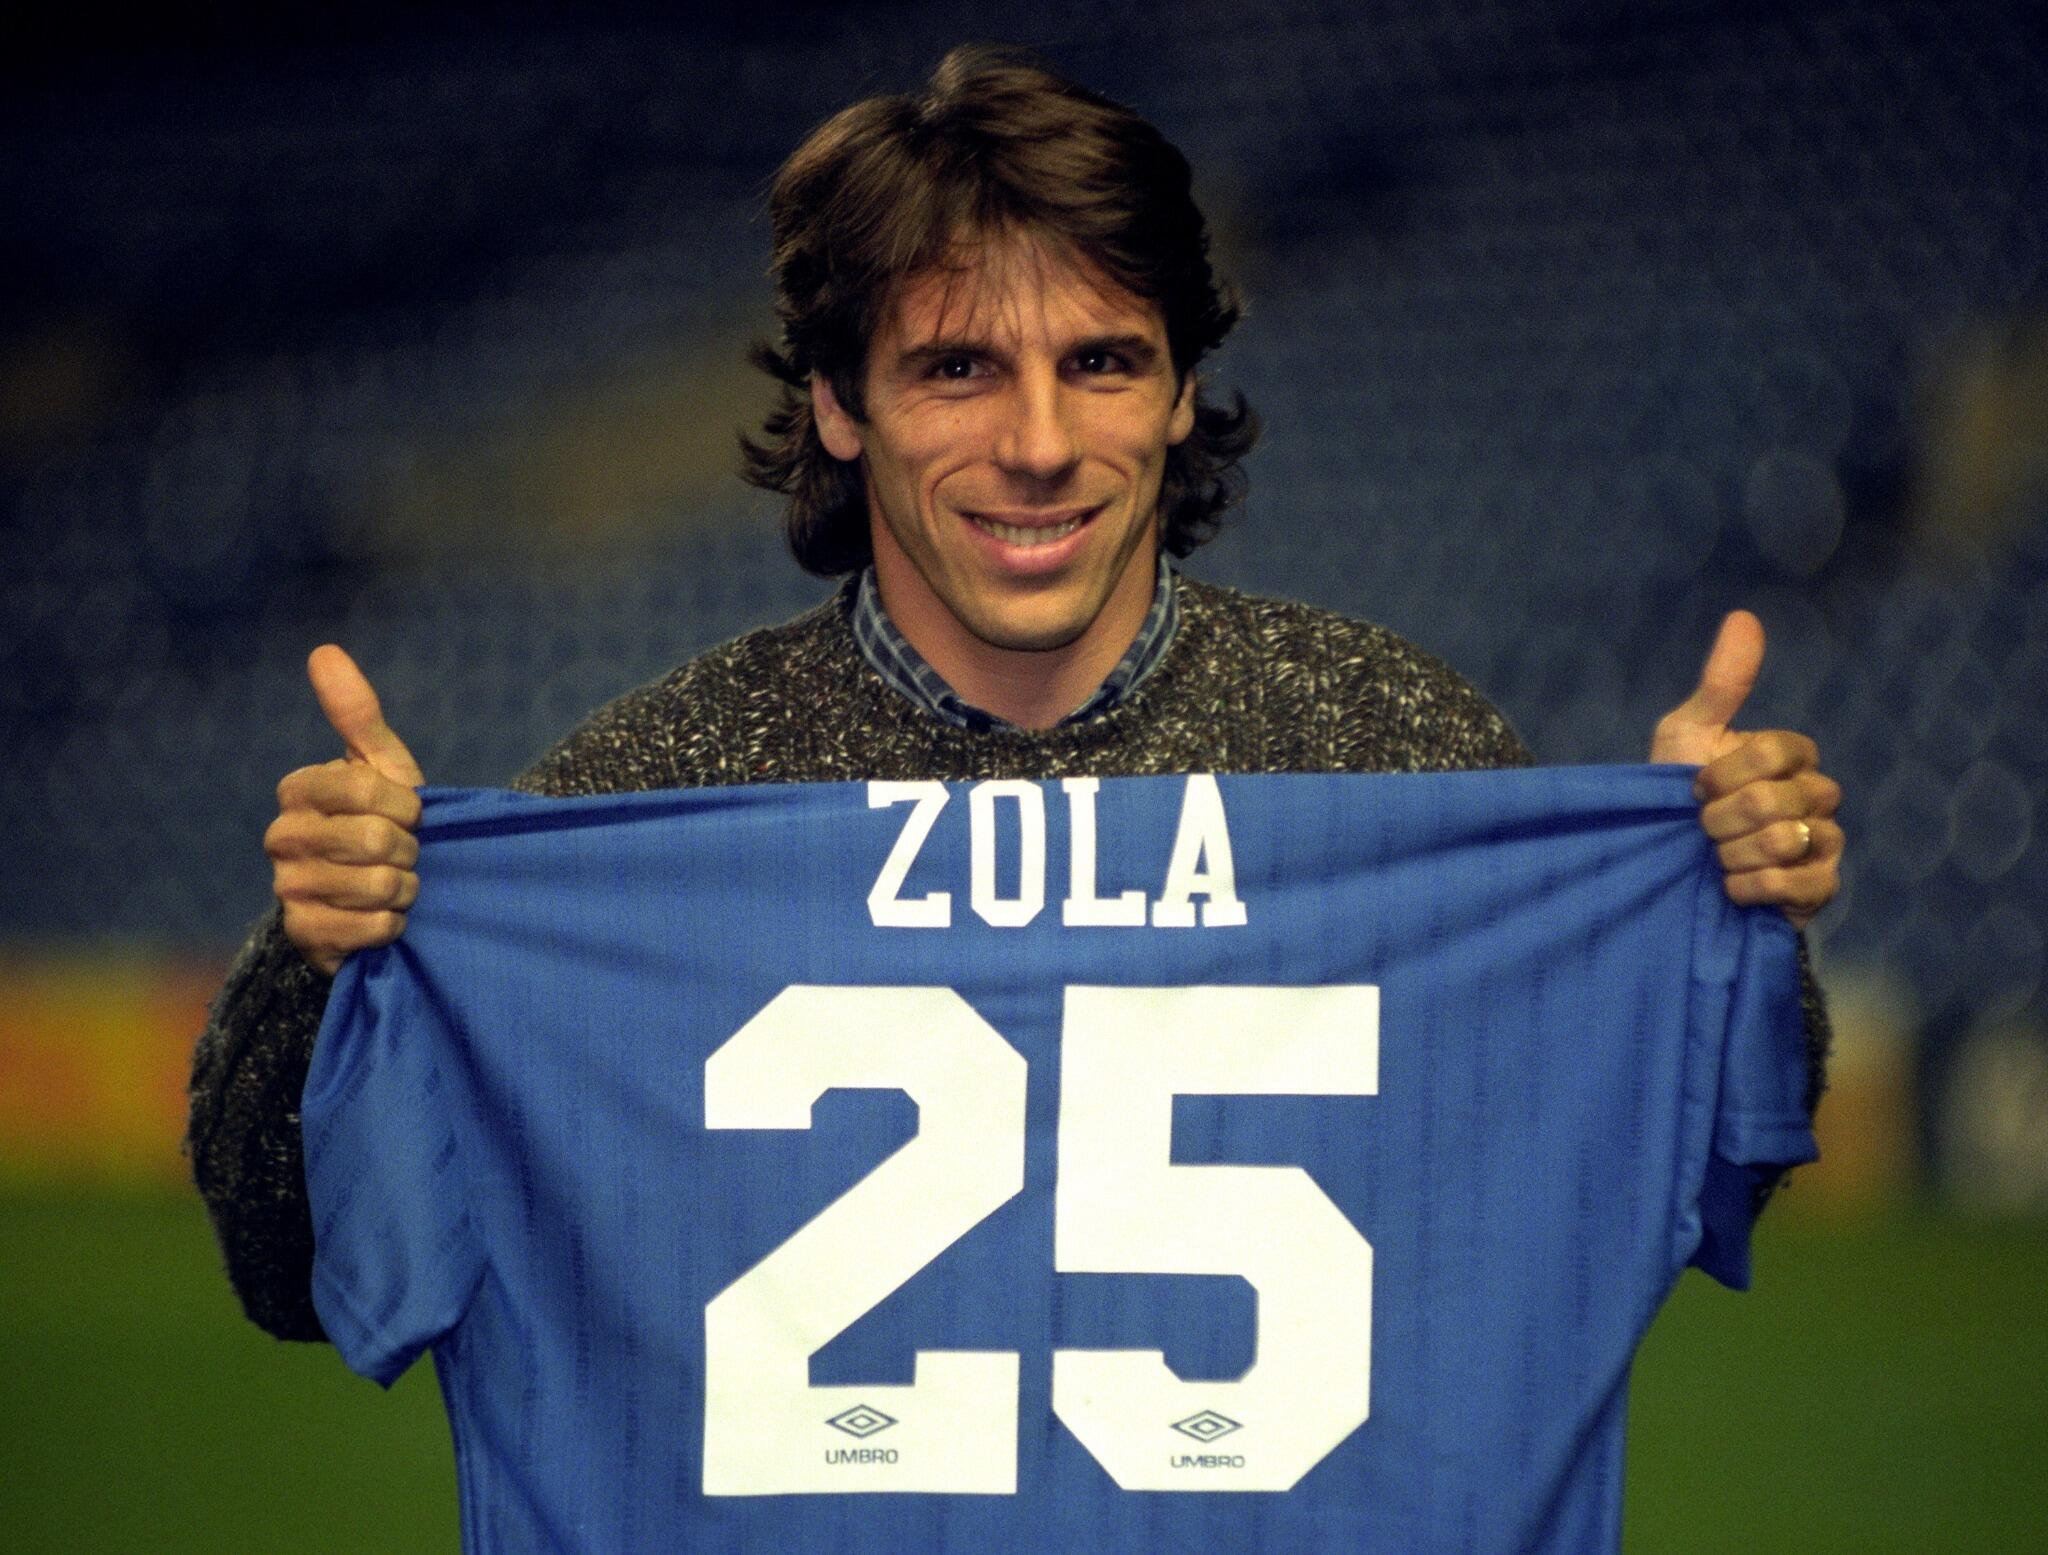 zola signed for chelsea on this day